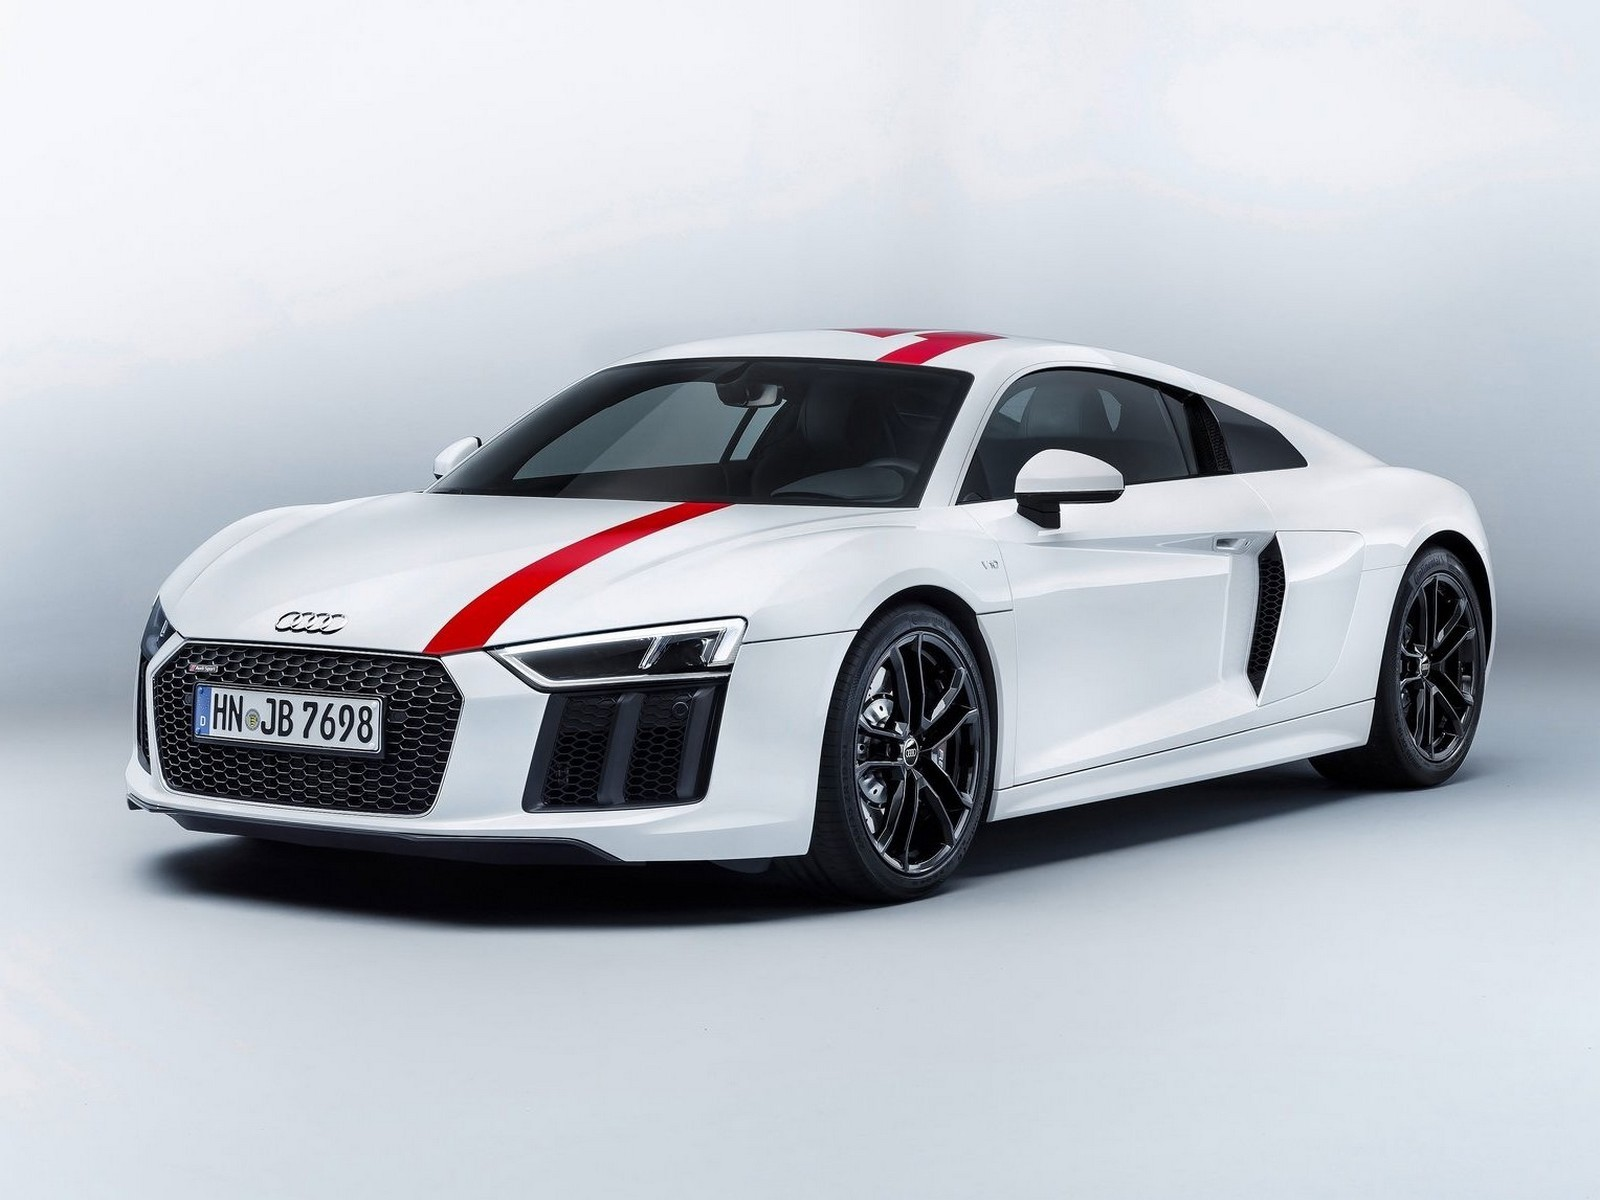 audi r8 v10 rws 2018 la voiture de sport audi propulsion arri re. Black Bedroom Furniture Sets. Home Design Ideas